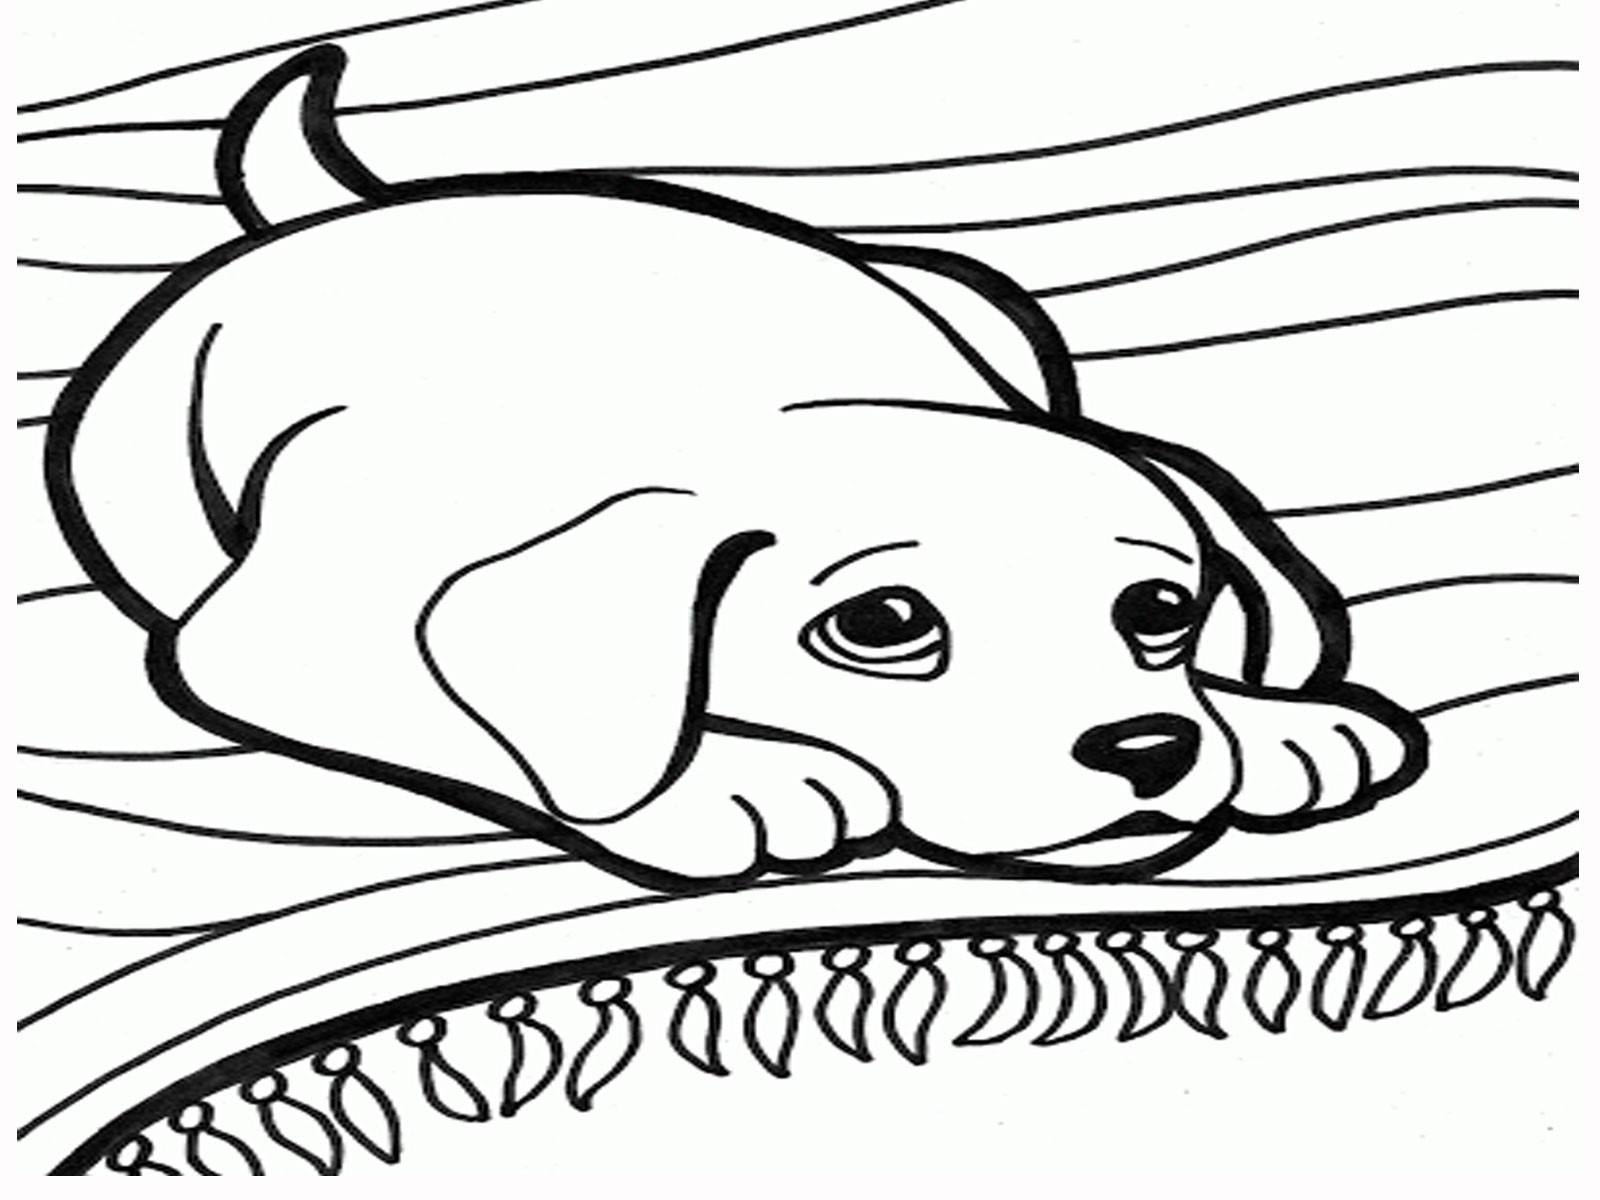 Best ideas about Dog Free Coloring Pages . Save or Pin Faithful animal Dog 20 Dog coloring pages Now.